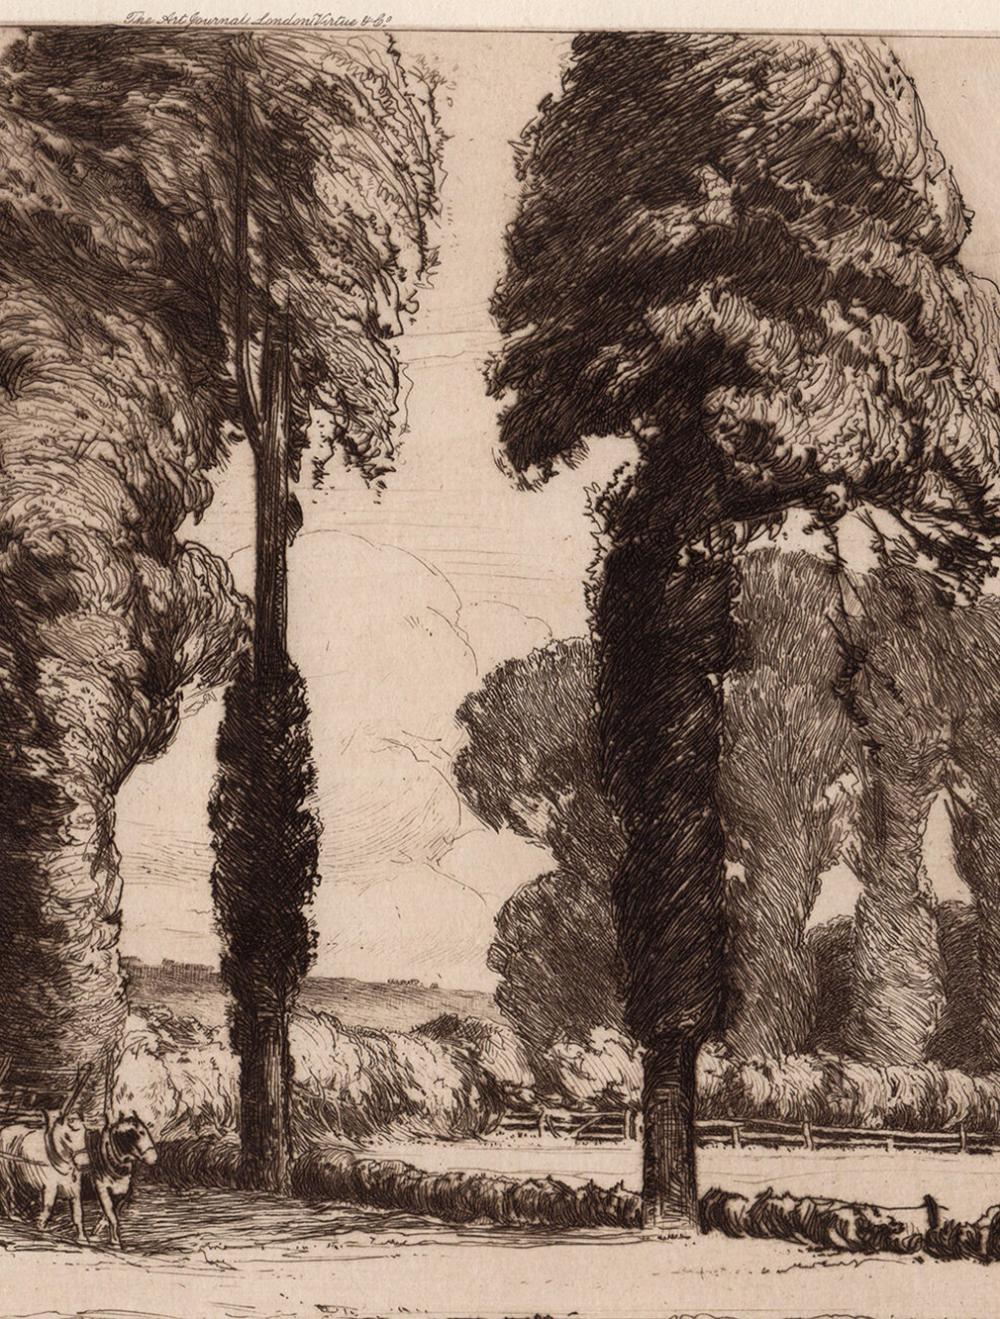 ORIGINAL Luke Taylor Etching The End of the Day  Custom Framed SIGNED Gallery Certificate Included